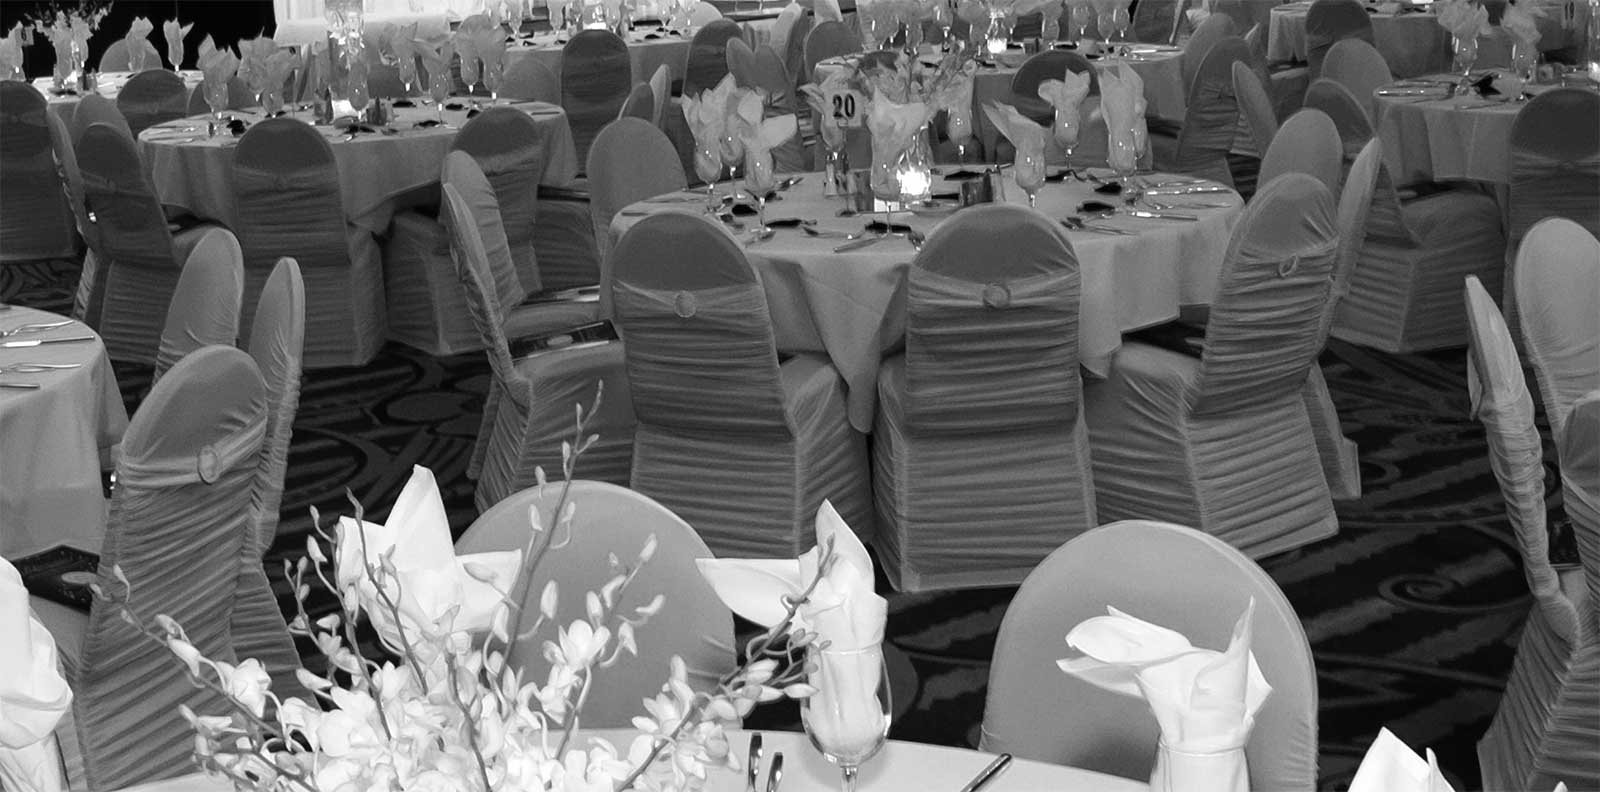 Concierge Services, Event Planning. Banquet. Gala.